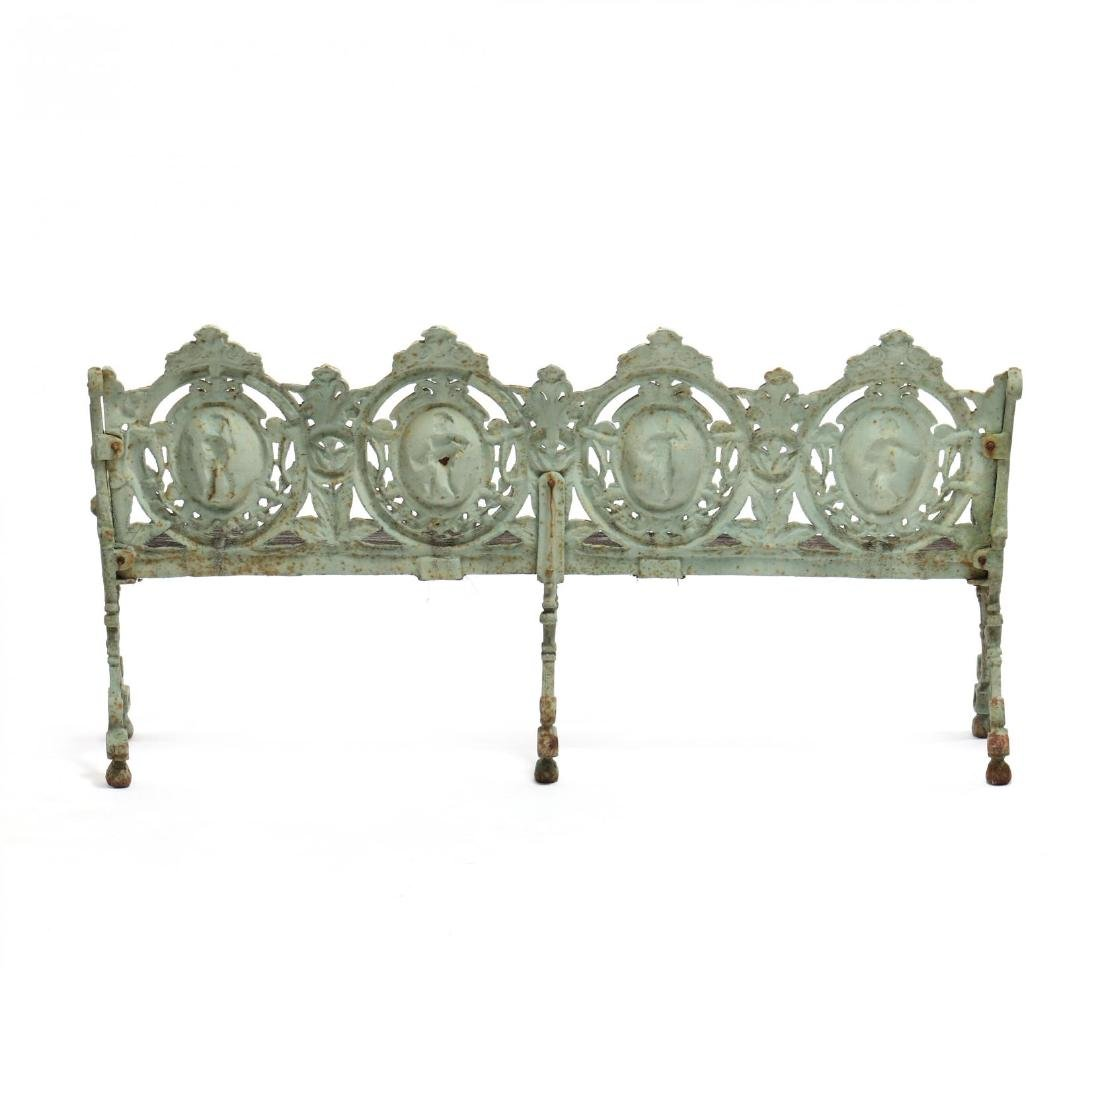 Pair of Renaissance Revival Cast Iron Garden Benches - 8